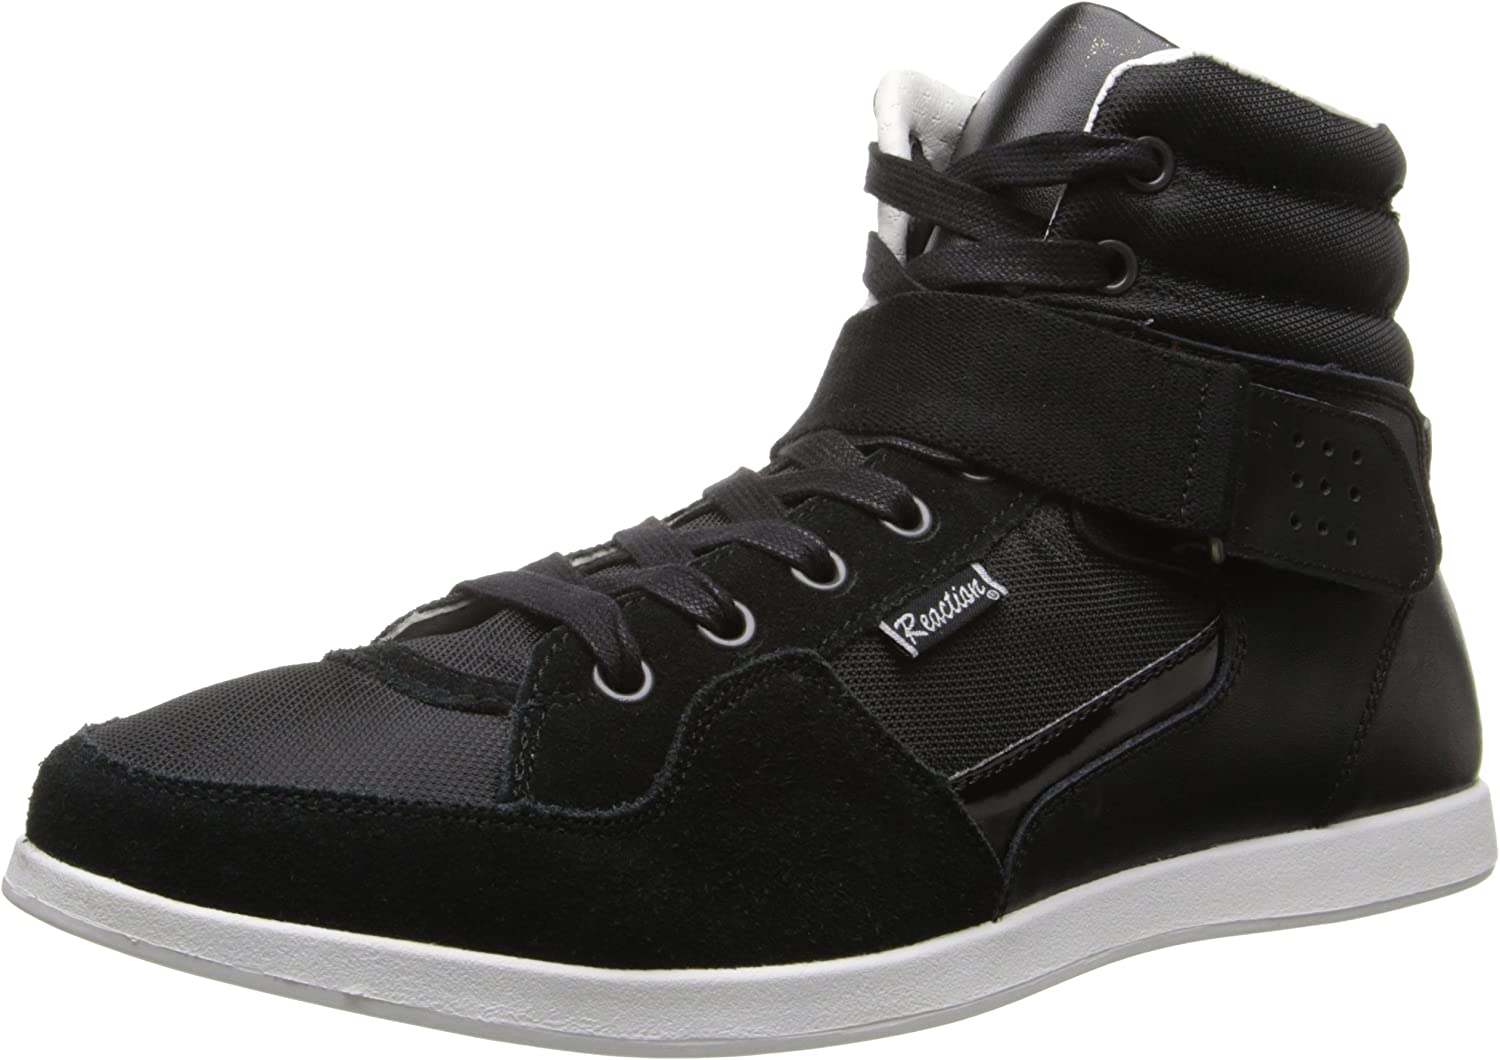 Kenneth Cole REACTION Men's Buy Low Ld